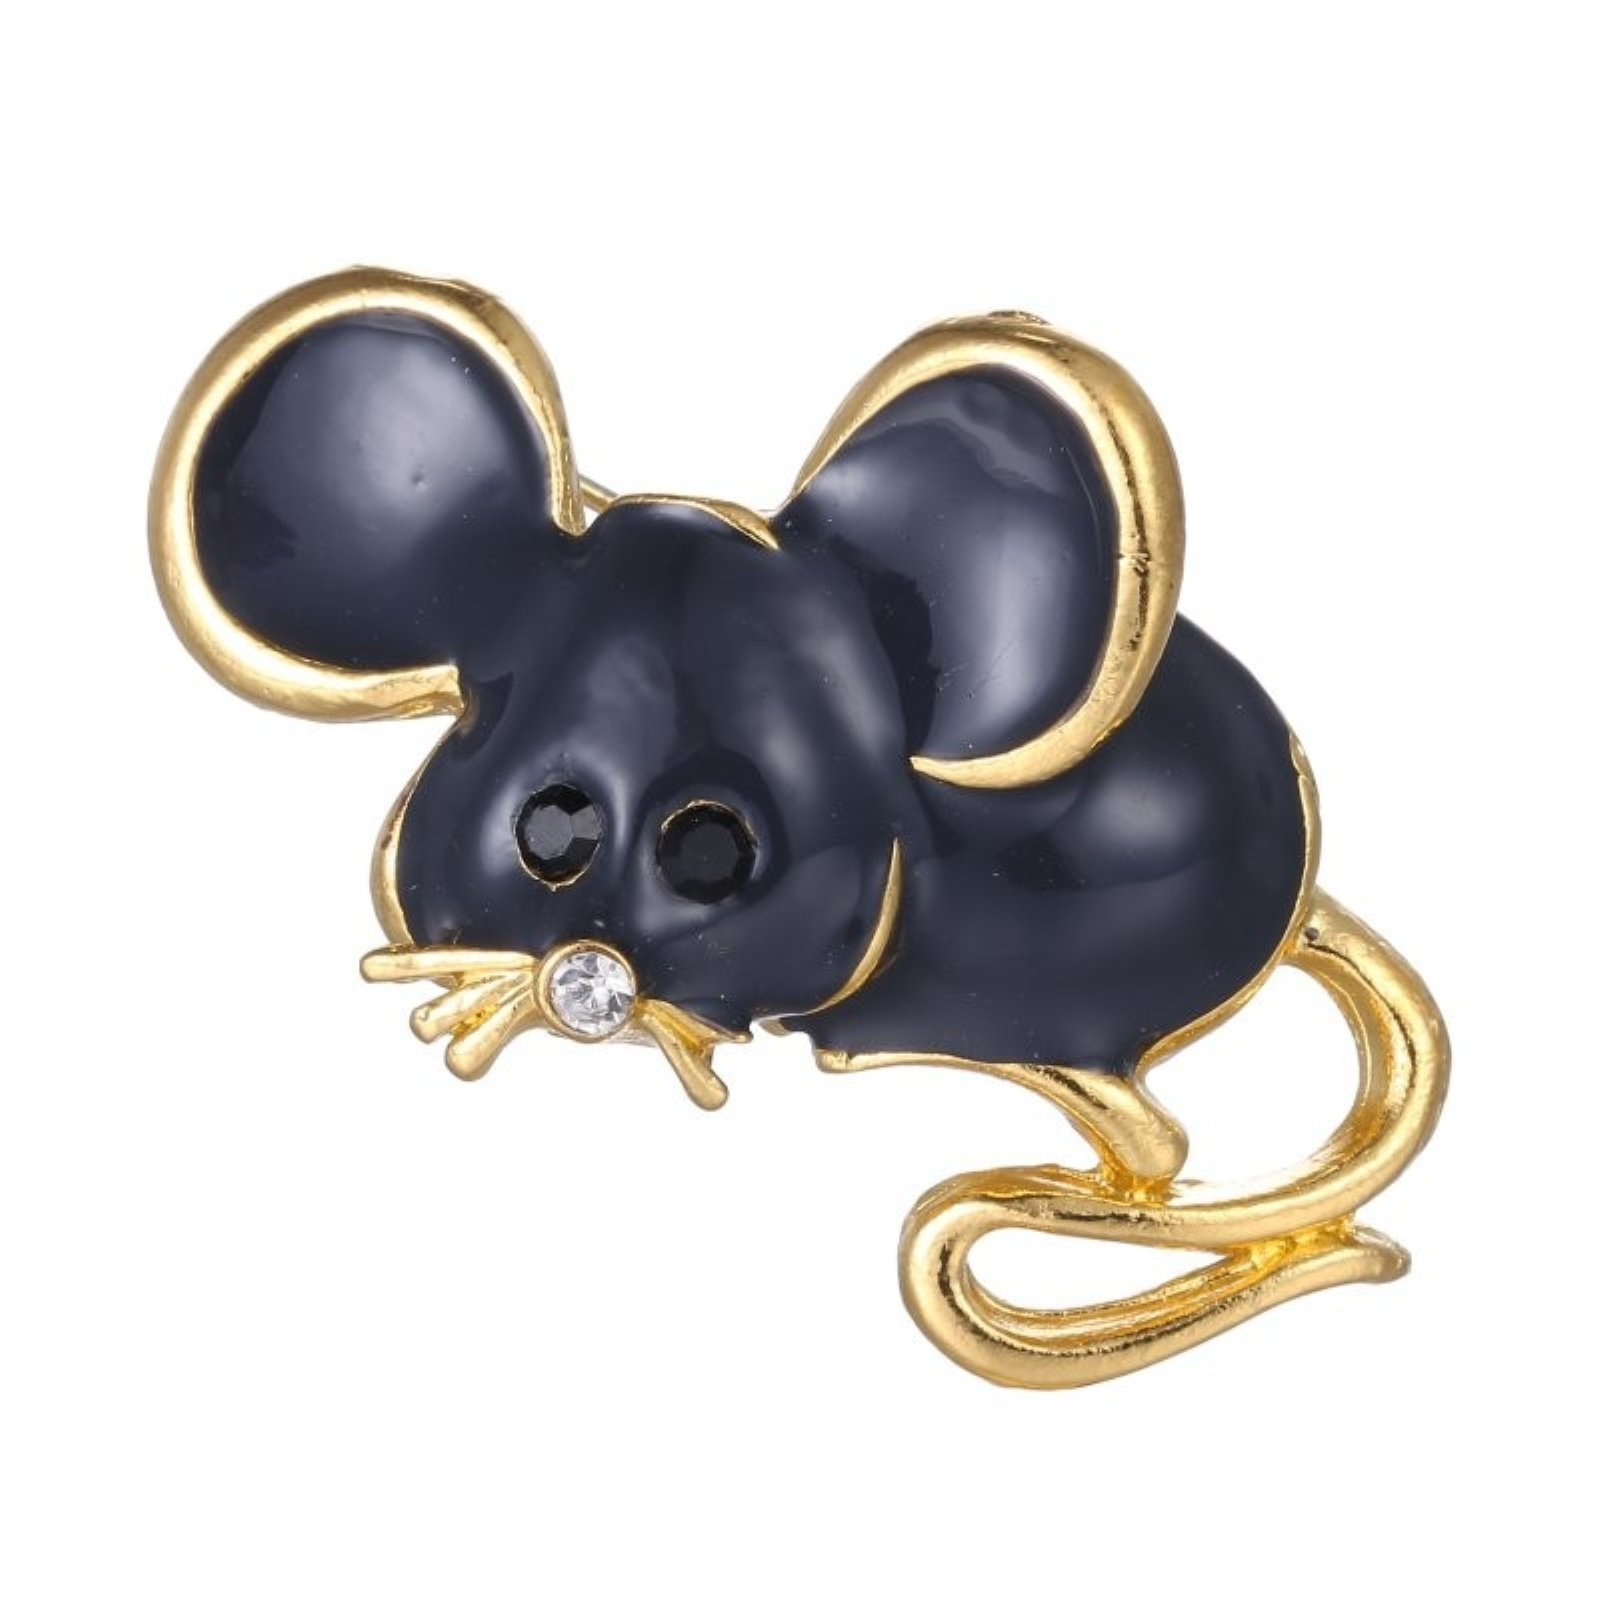 ptk12 Black vintage cute mouse Brooch pins gold color brooch decoration jewelry animal Brooches